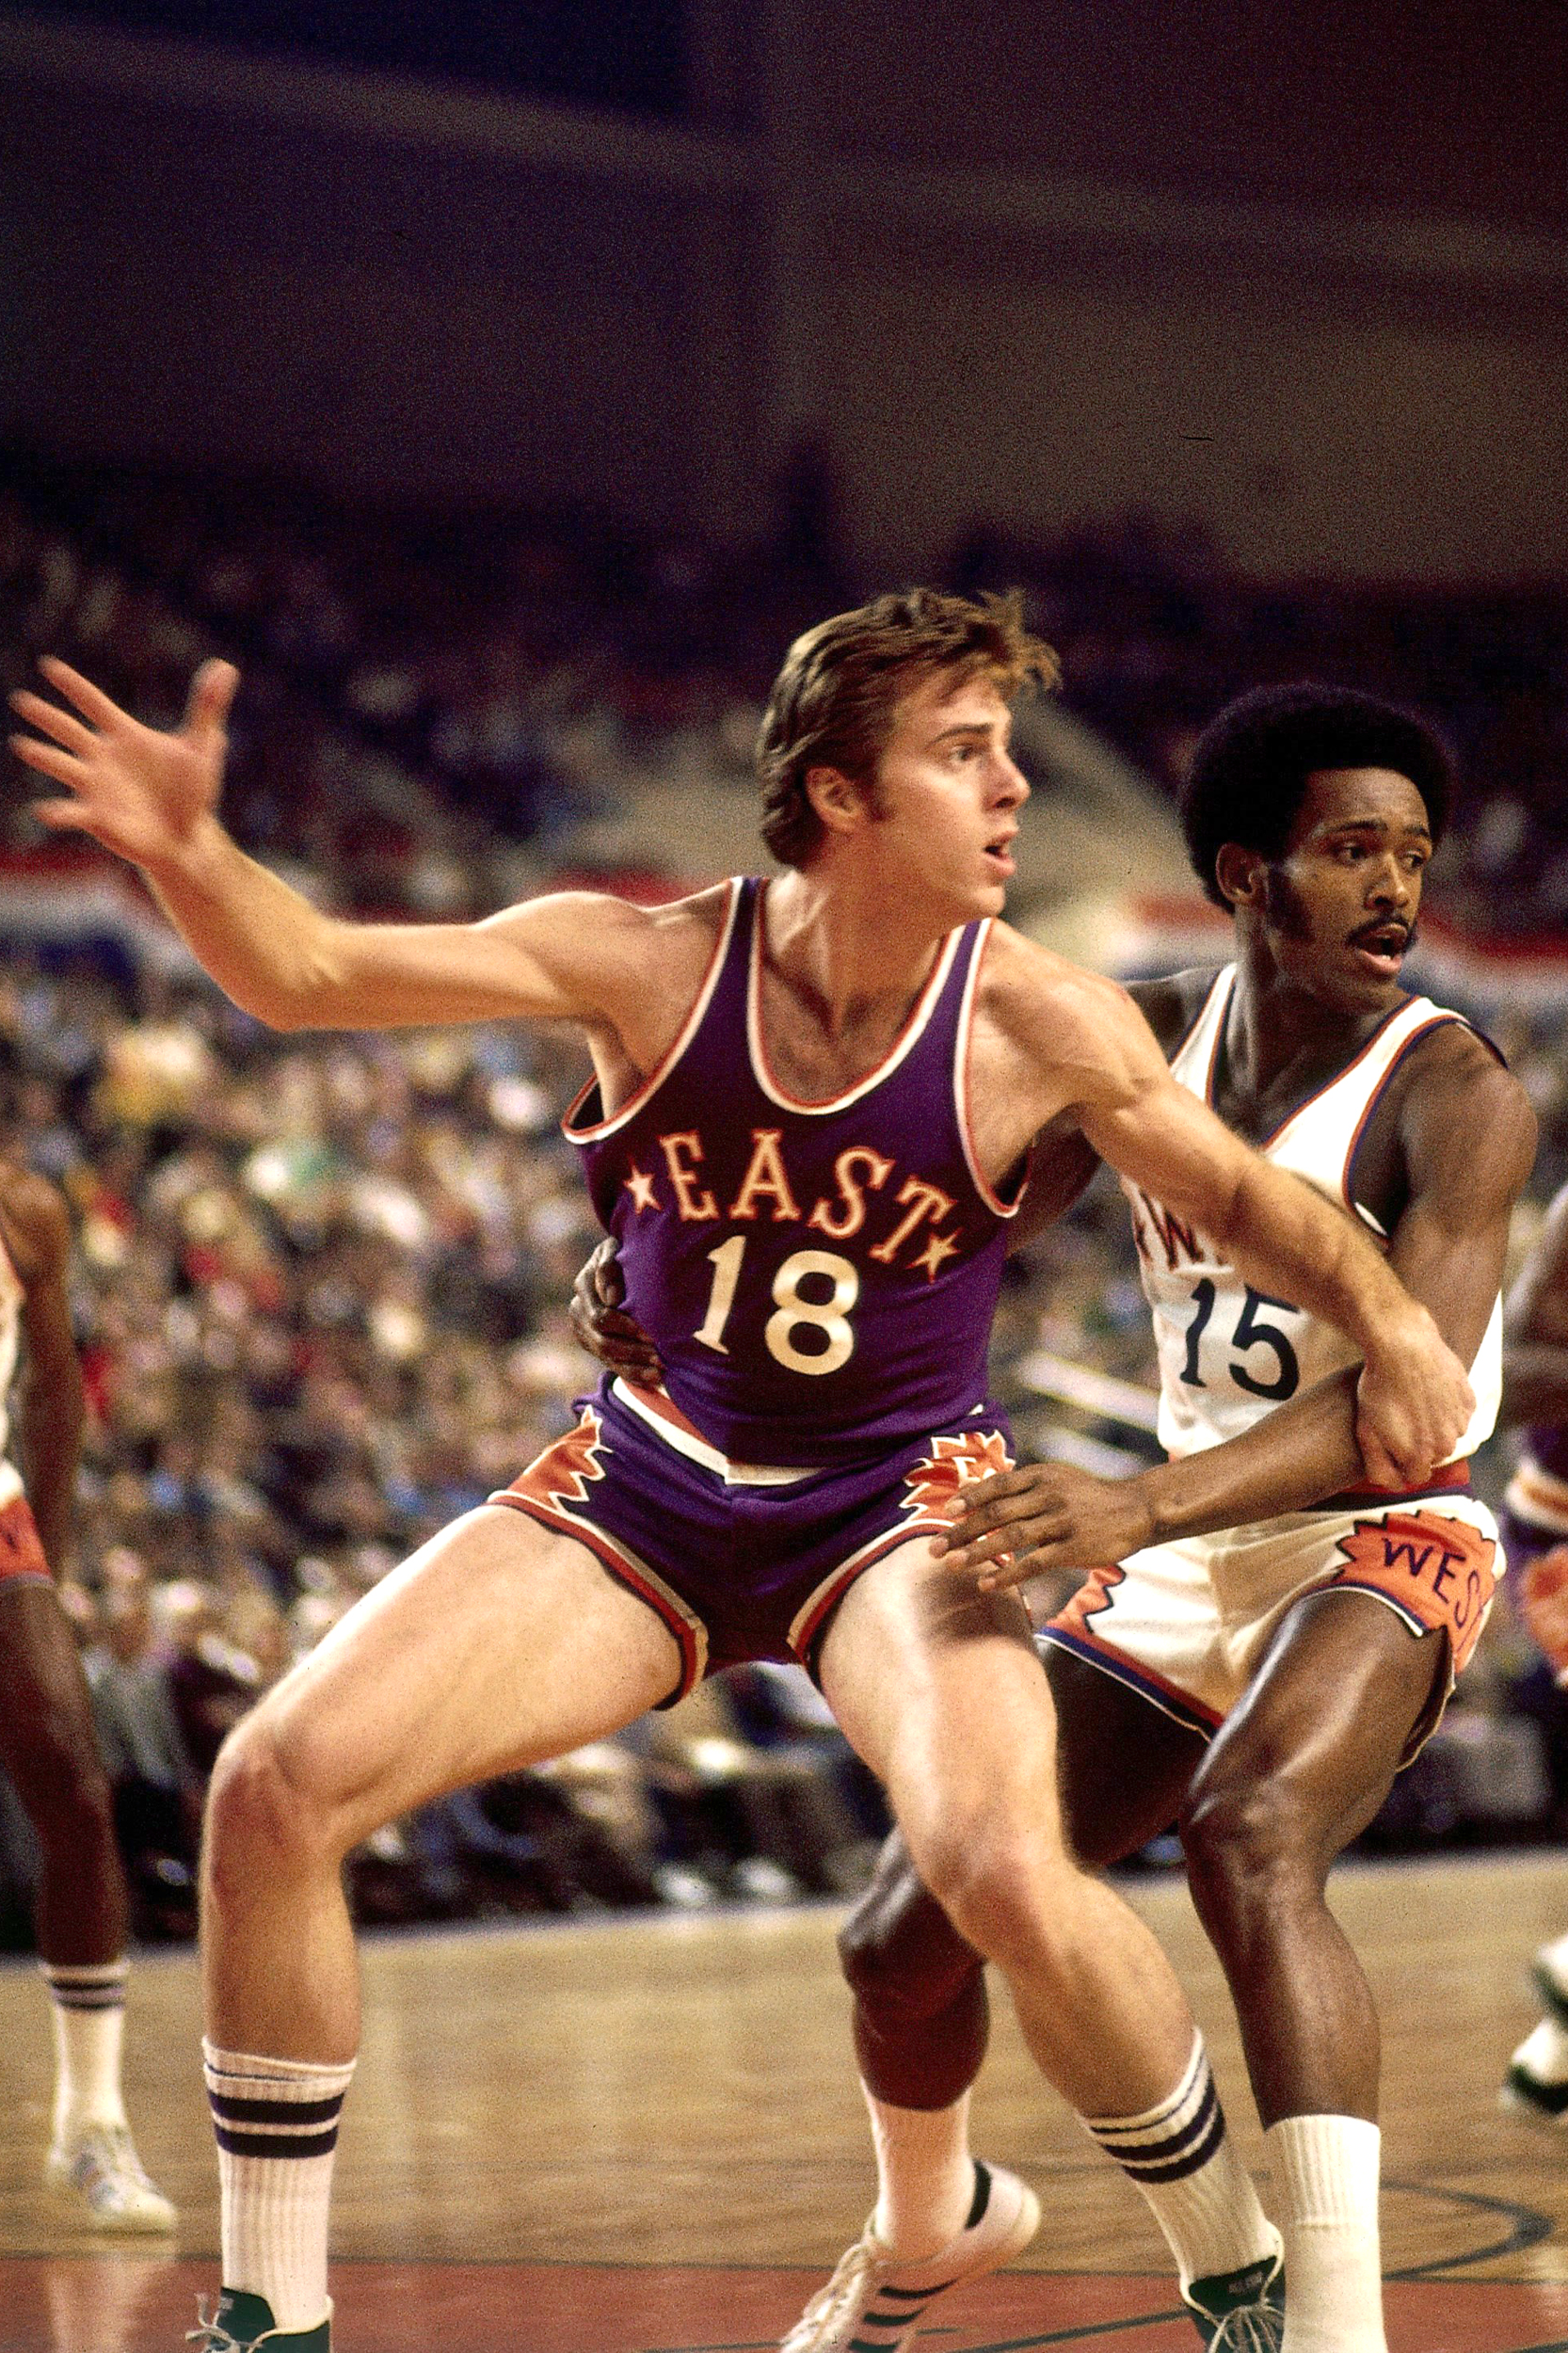 Dave Cowens #18 of the East All Stars posts up during the 1975 All Star Game on January 14, 1975 at the Veterans Memorial Coliseum in Phoenix, Arizona.